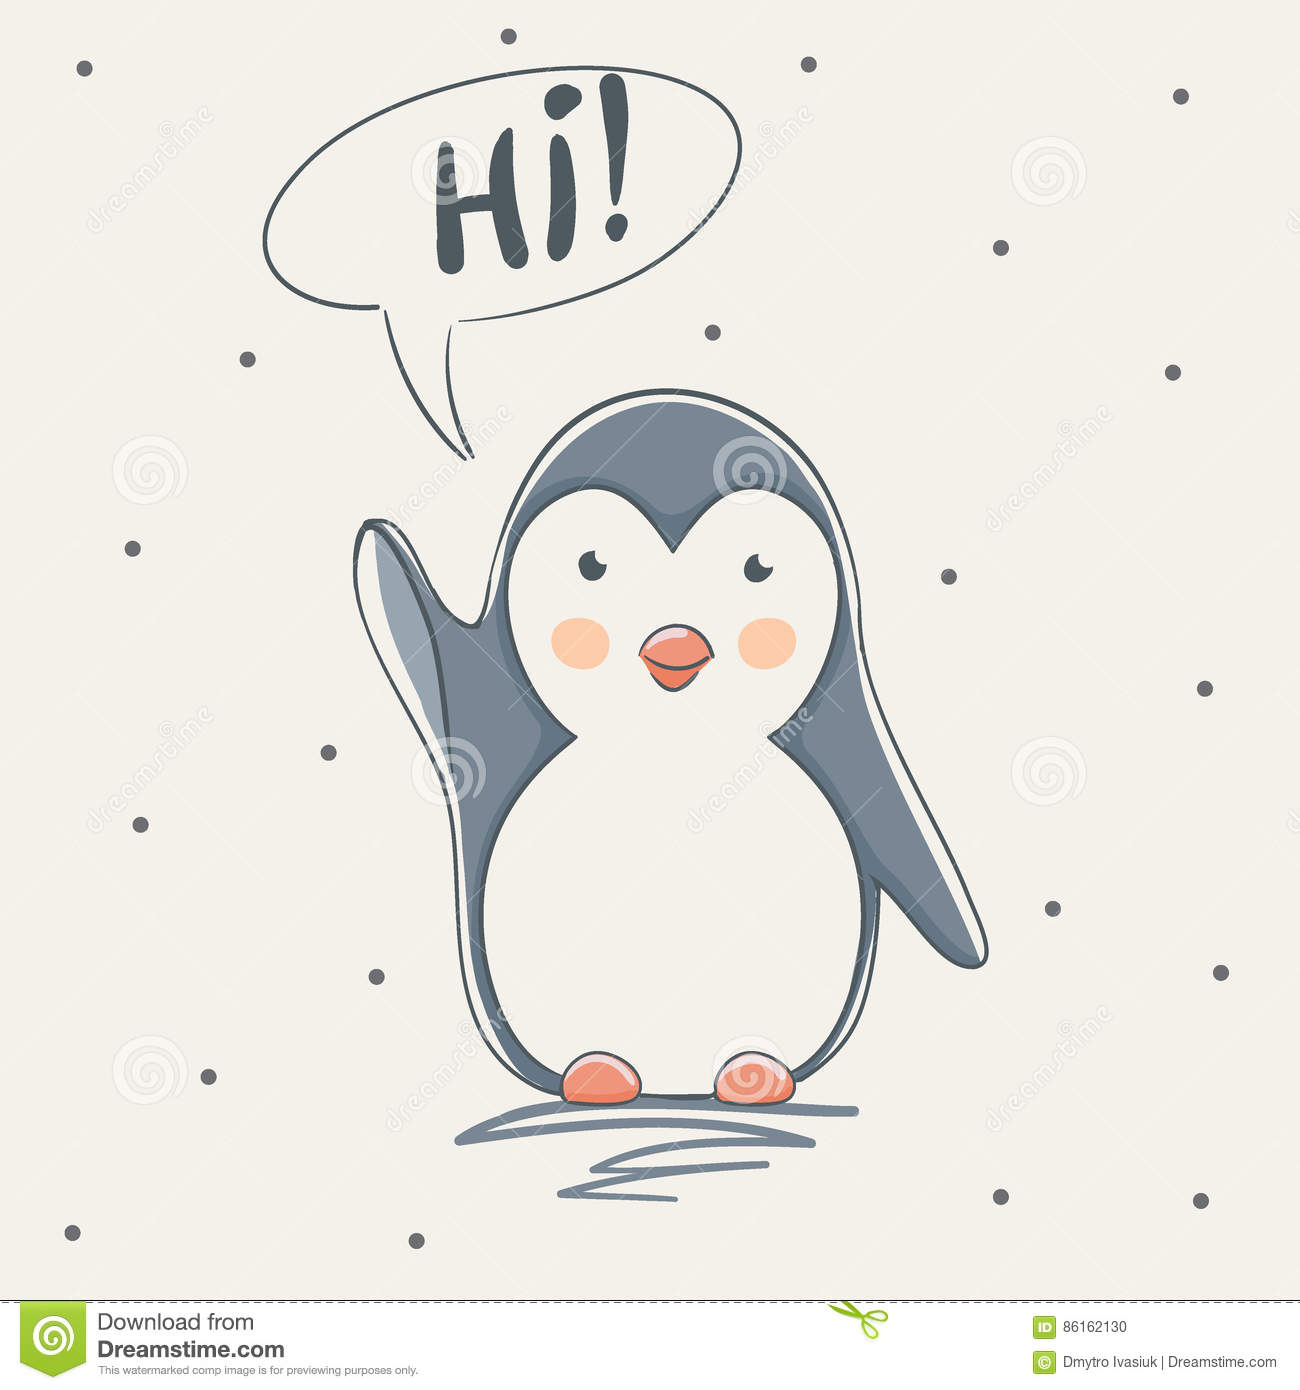 Cute penguin say hi stock vector illustration of abstract 86162130 cute penguin says hiildish cartoon design for kid t shirtsdress or greeting cards m4hsunfo